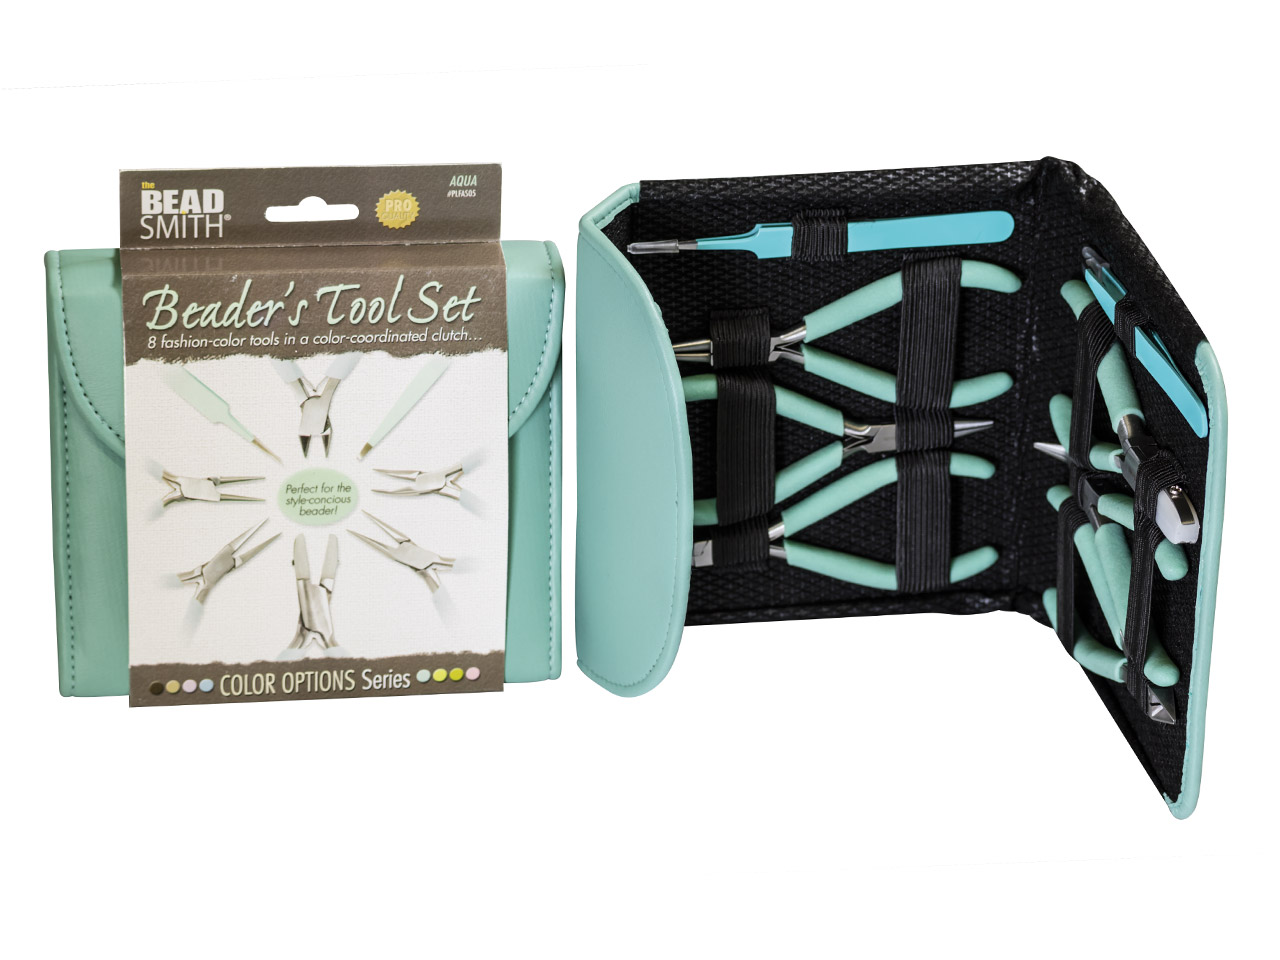 Beadsmith Beader's Tool Kit In Aqua Fashion Clutch Bag